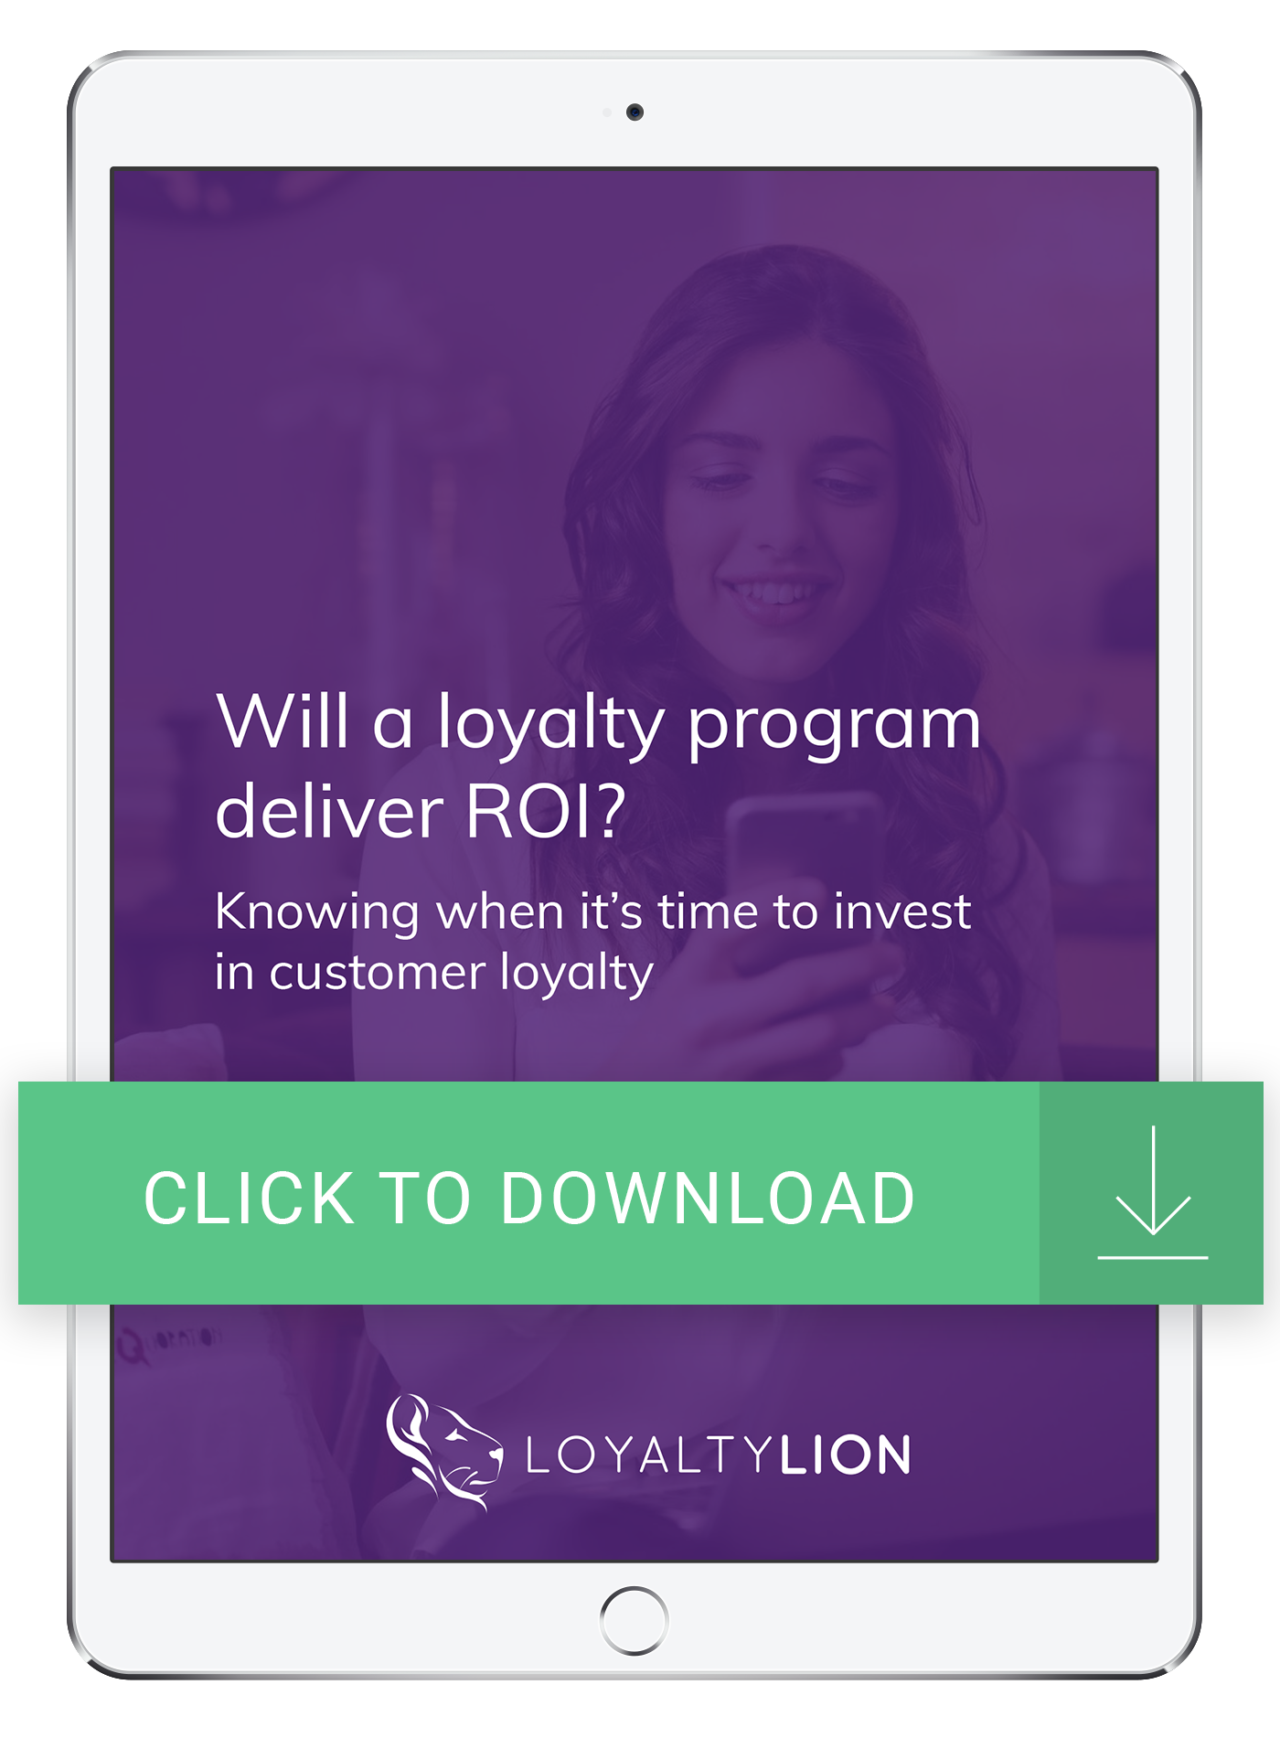 Will a loyalty program deliver ROI?